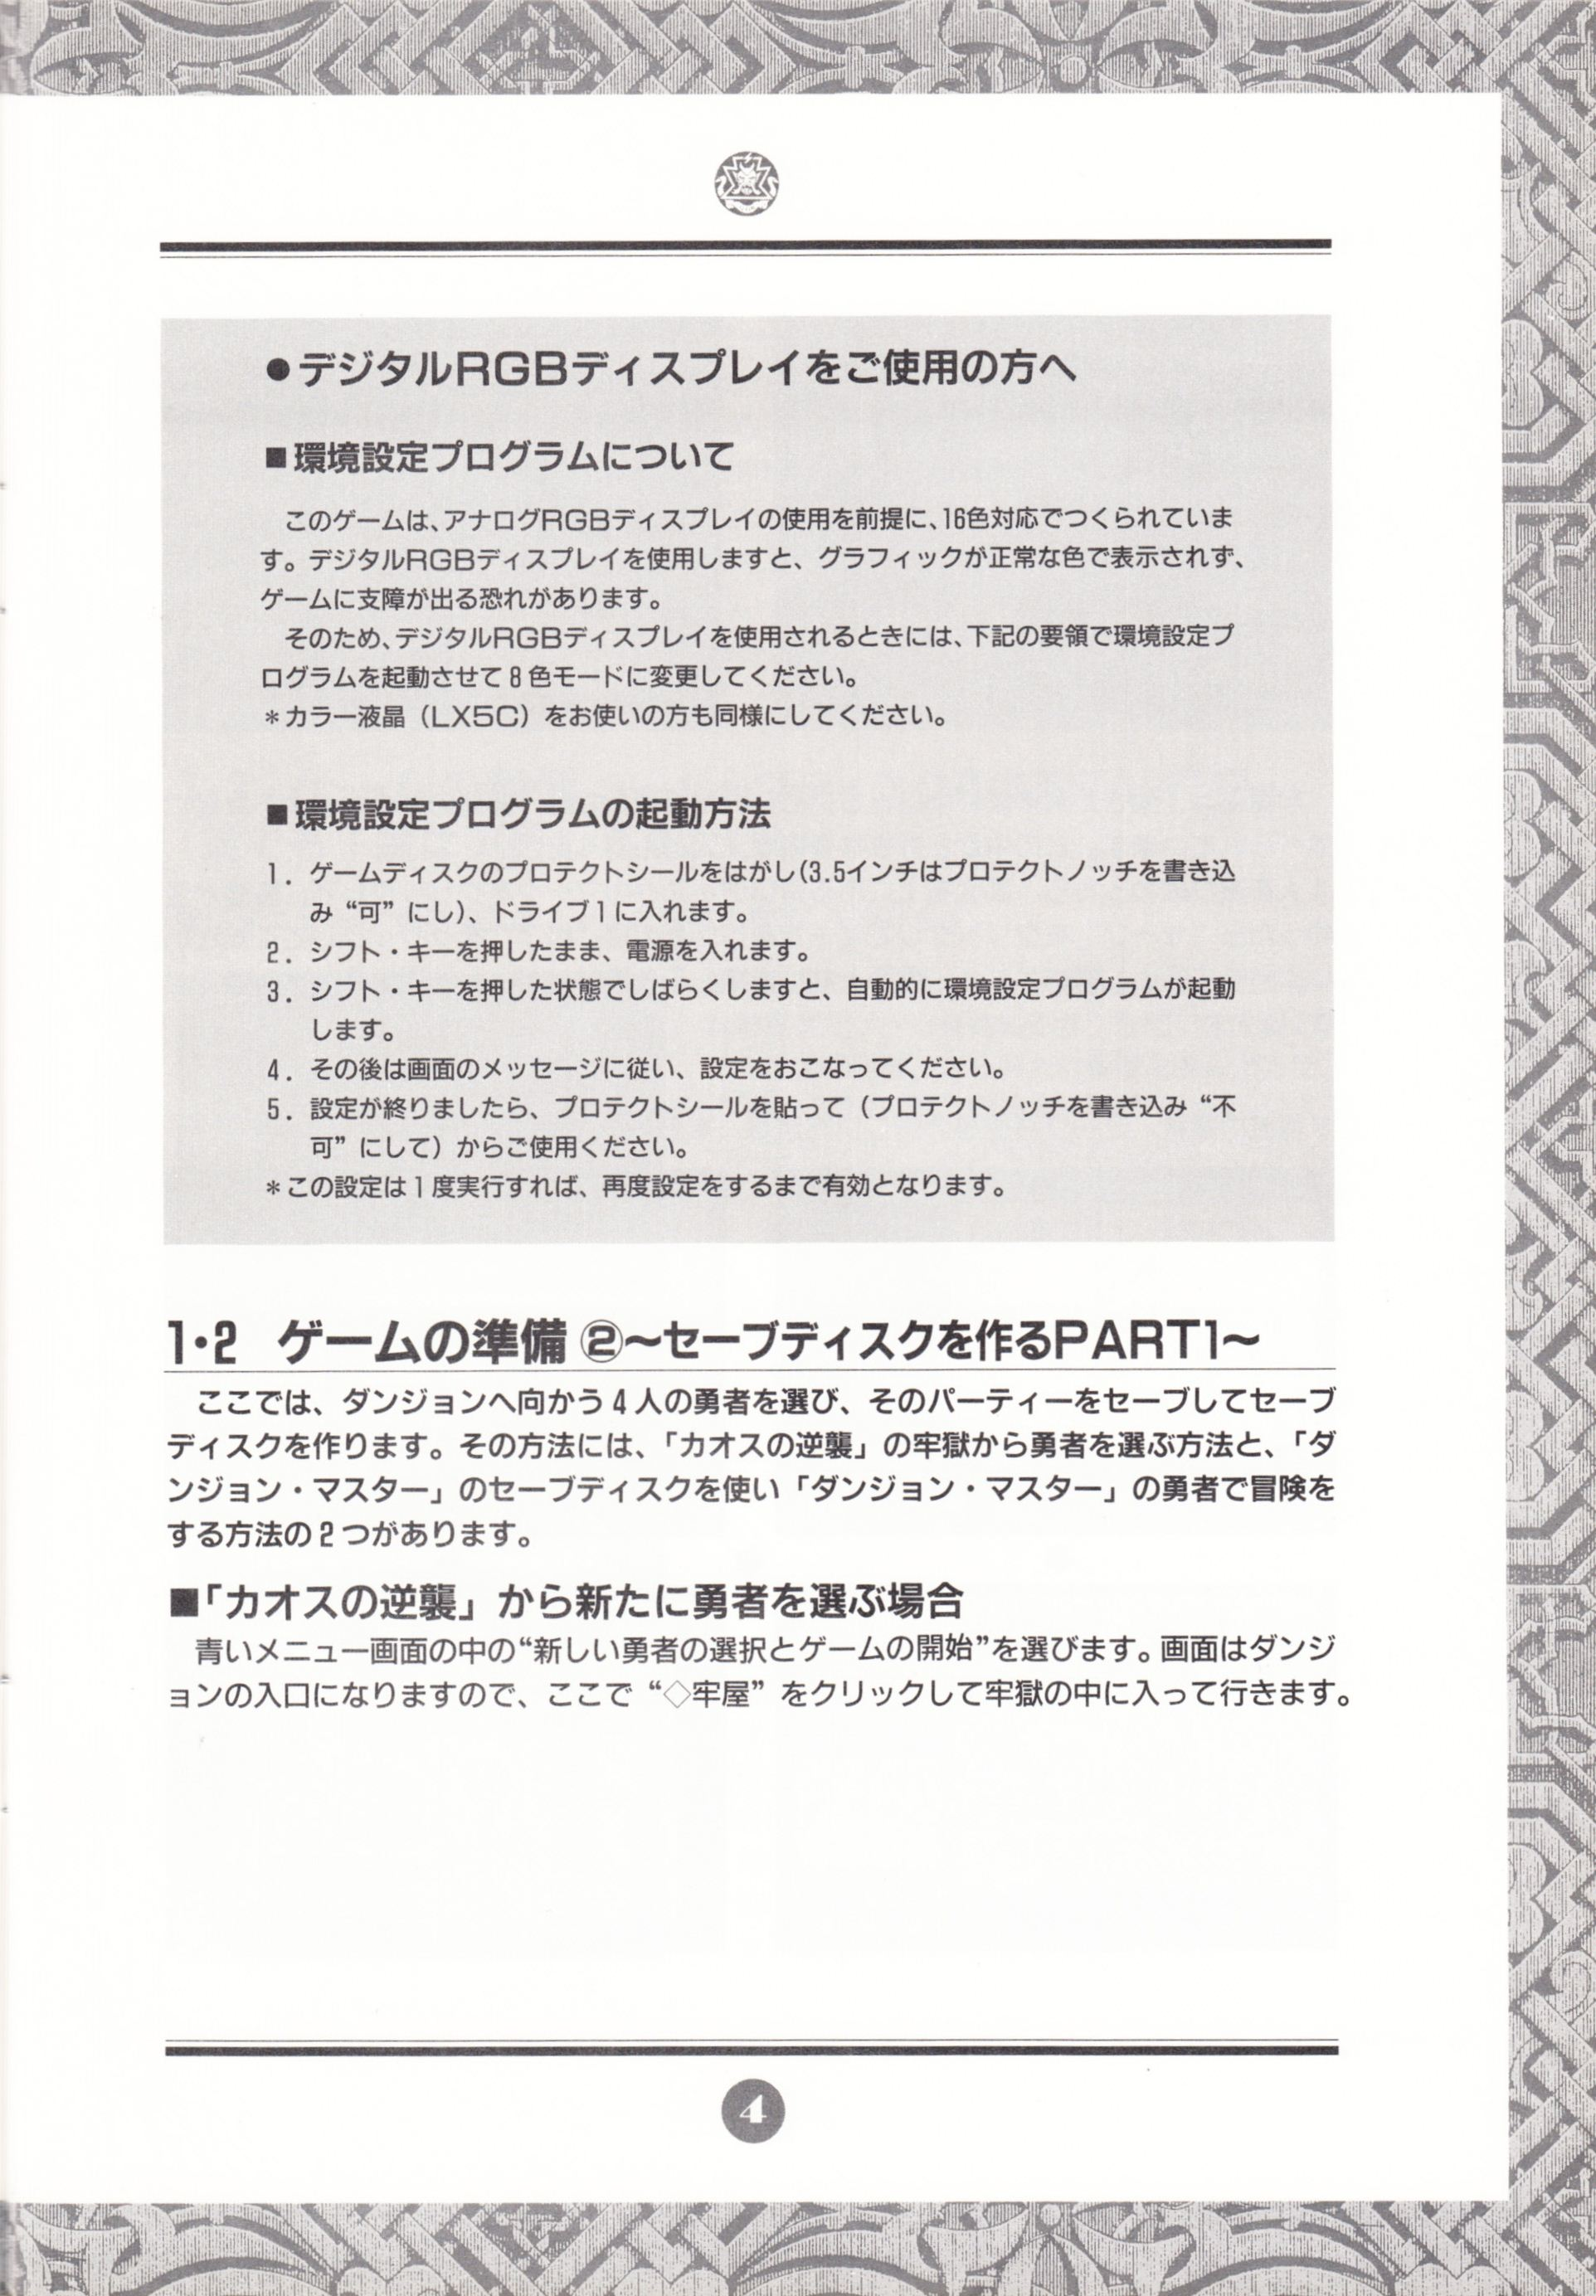 Game - Chaos Strikes Back - JP - PC-9801 - 5.25-inch - An Operation Manual - Page 007 - Scan